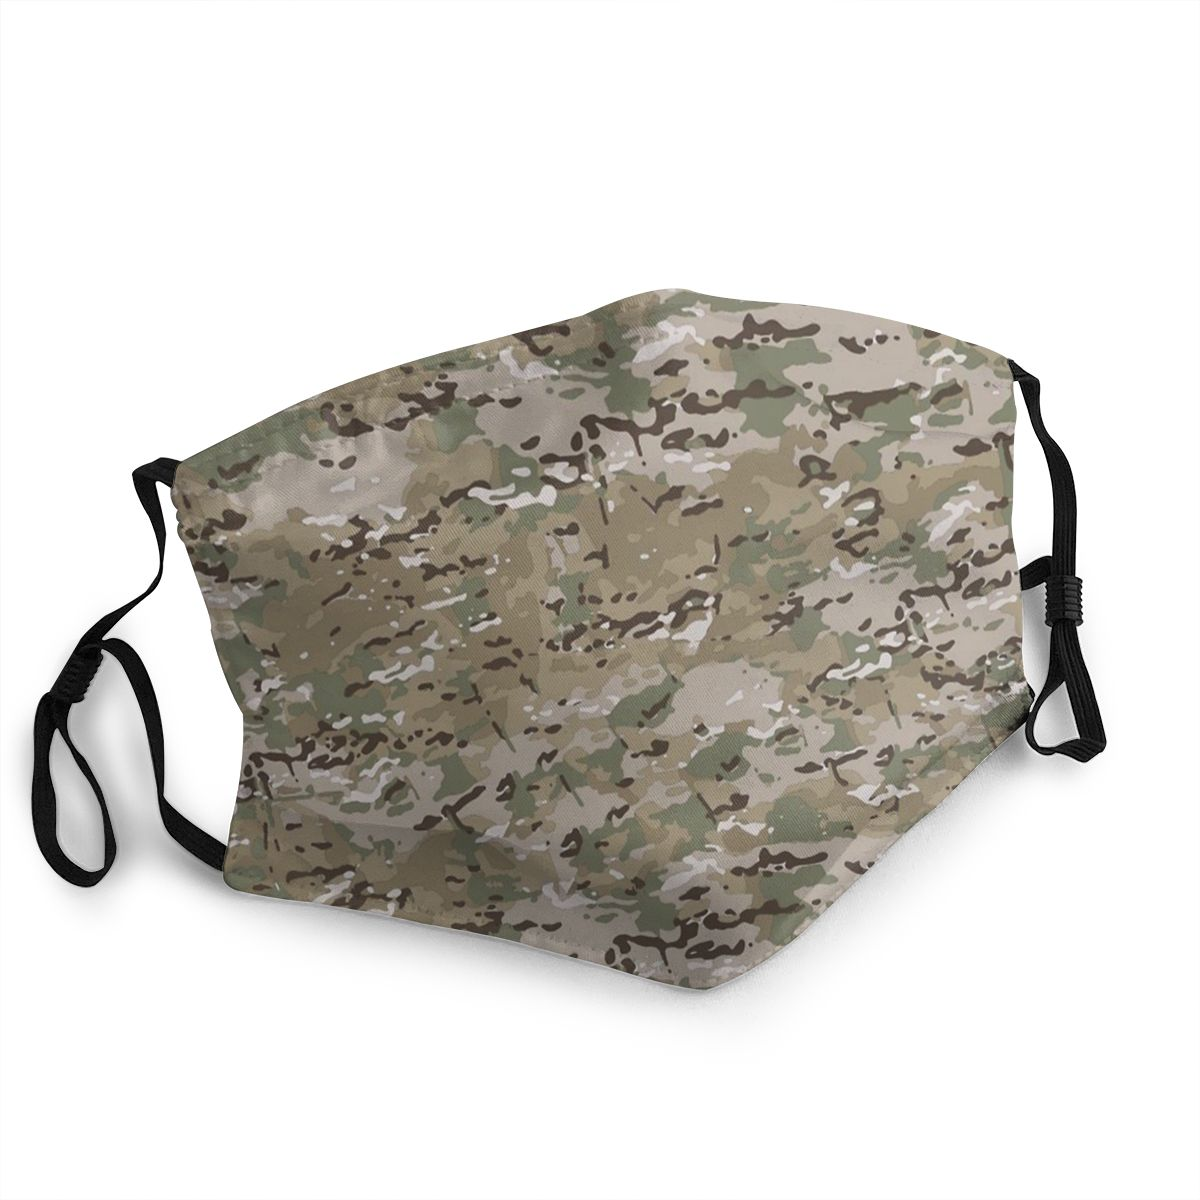 Multicam Reusable Face Mask Camouflage Military Anti Haze Dust Mask Protection Cover Respirator Mouth Muffle